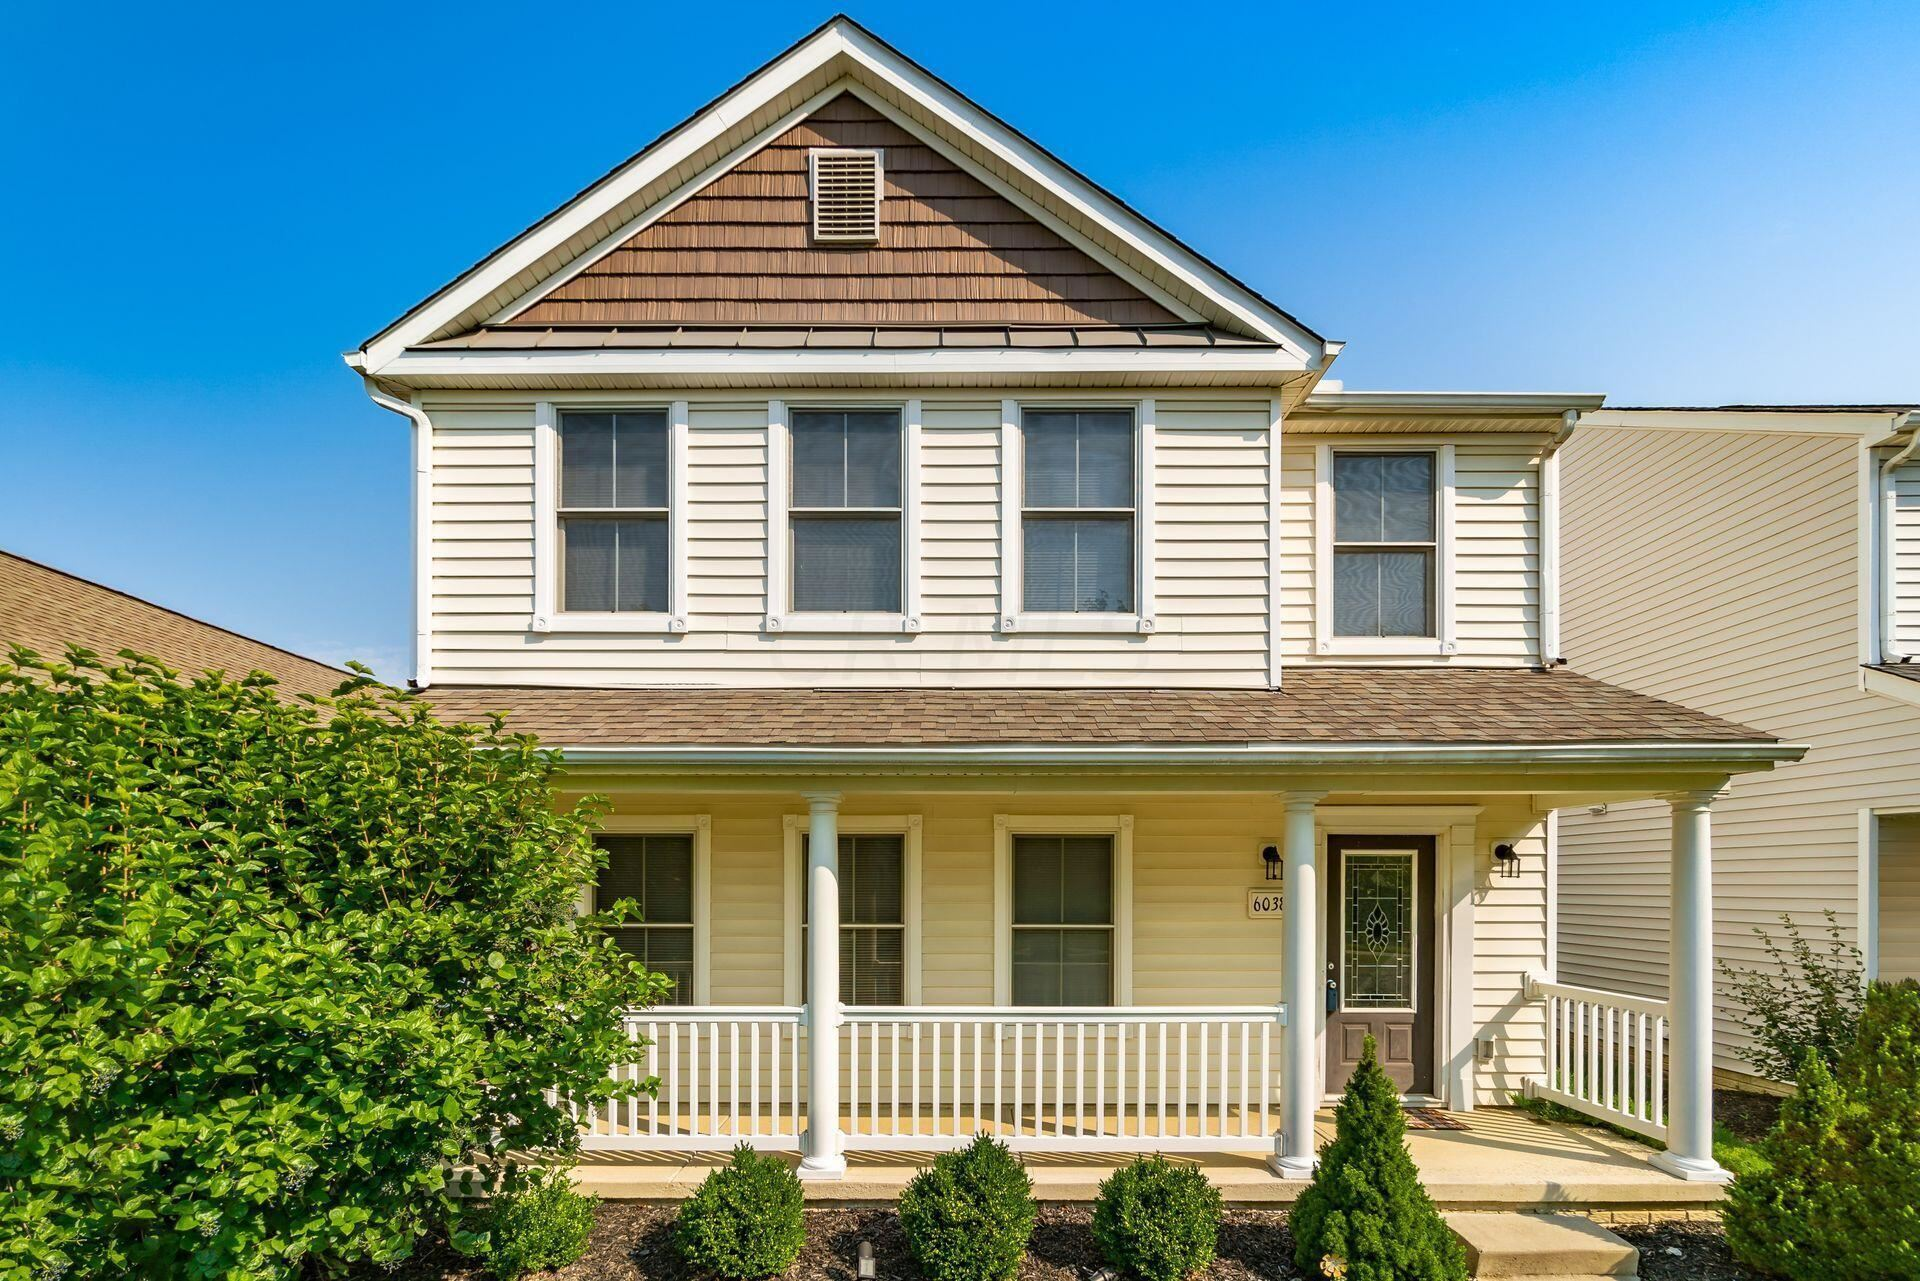 Photo of 6038 Turnwood Drive, Westerville, OH 43081 (MLS # 221036284)